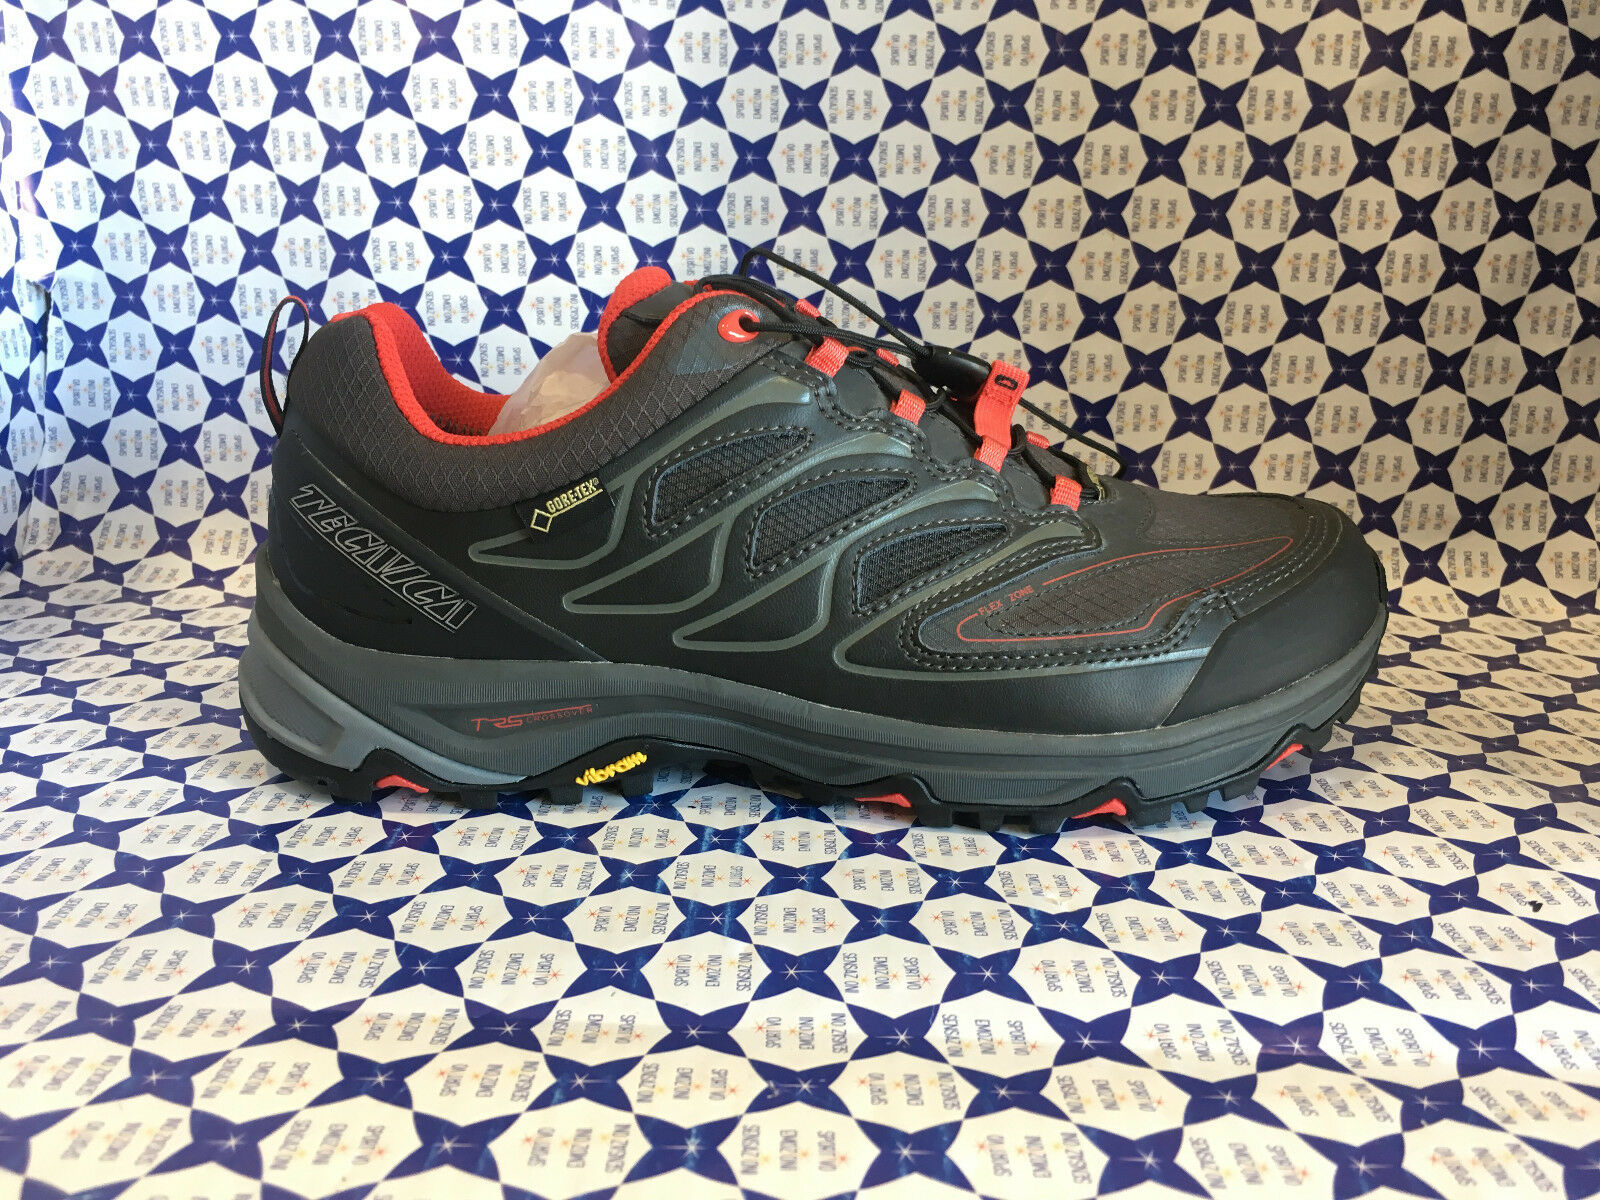 shoes Trekking  Tecnica men - Scirocco Low GTX MS - black red - 112331  clearance